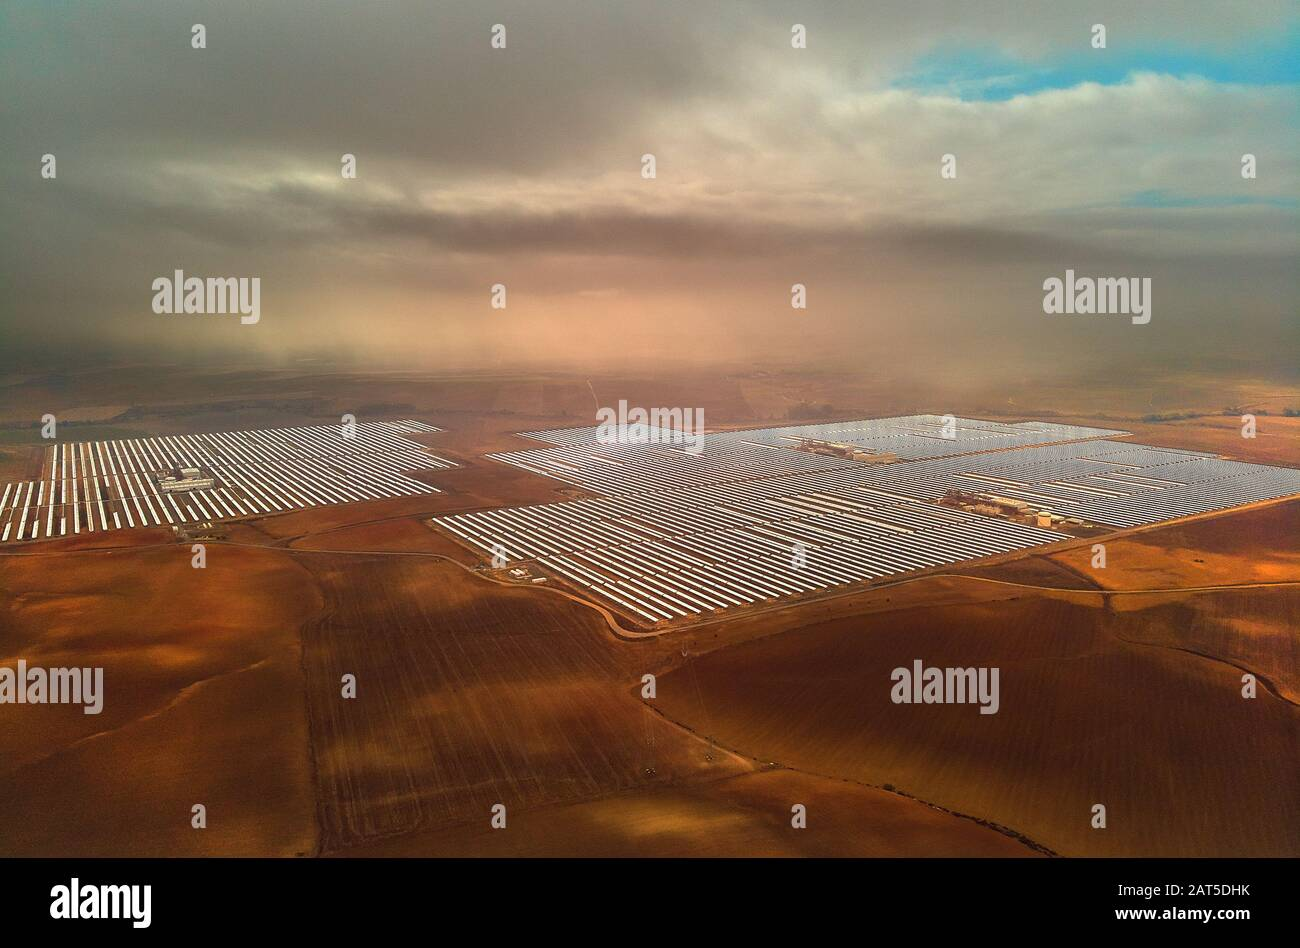 Aerial image drone point of view photo Gemasolar Concentrated solar power plant CSP, system generate solar power. Sevilla, Spain Stock Photo